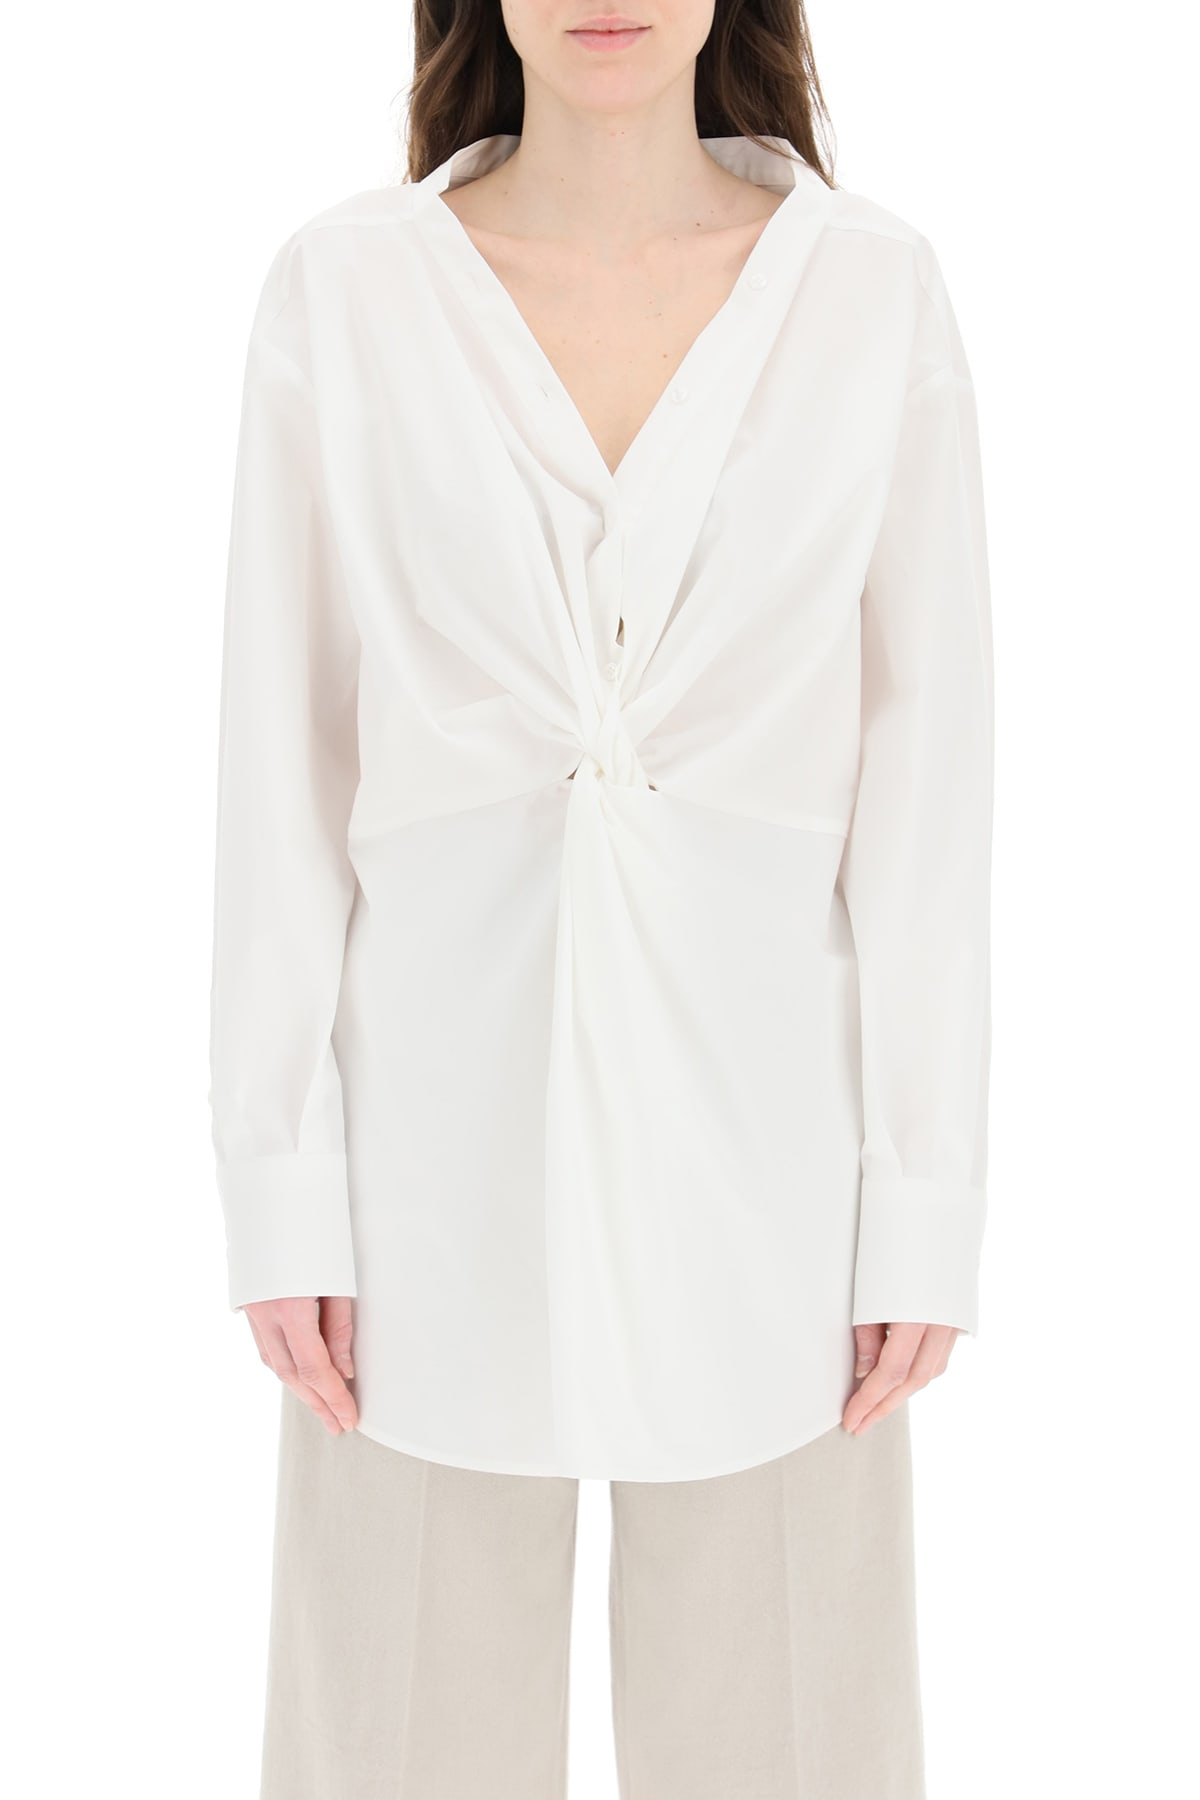 Msgm OVERSIZED BLOUSE WITH KNOT